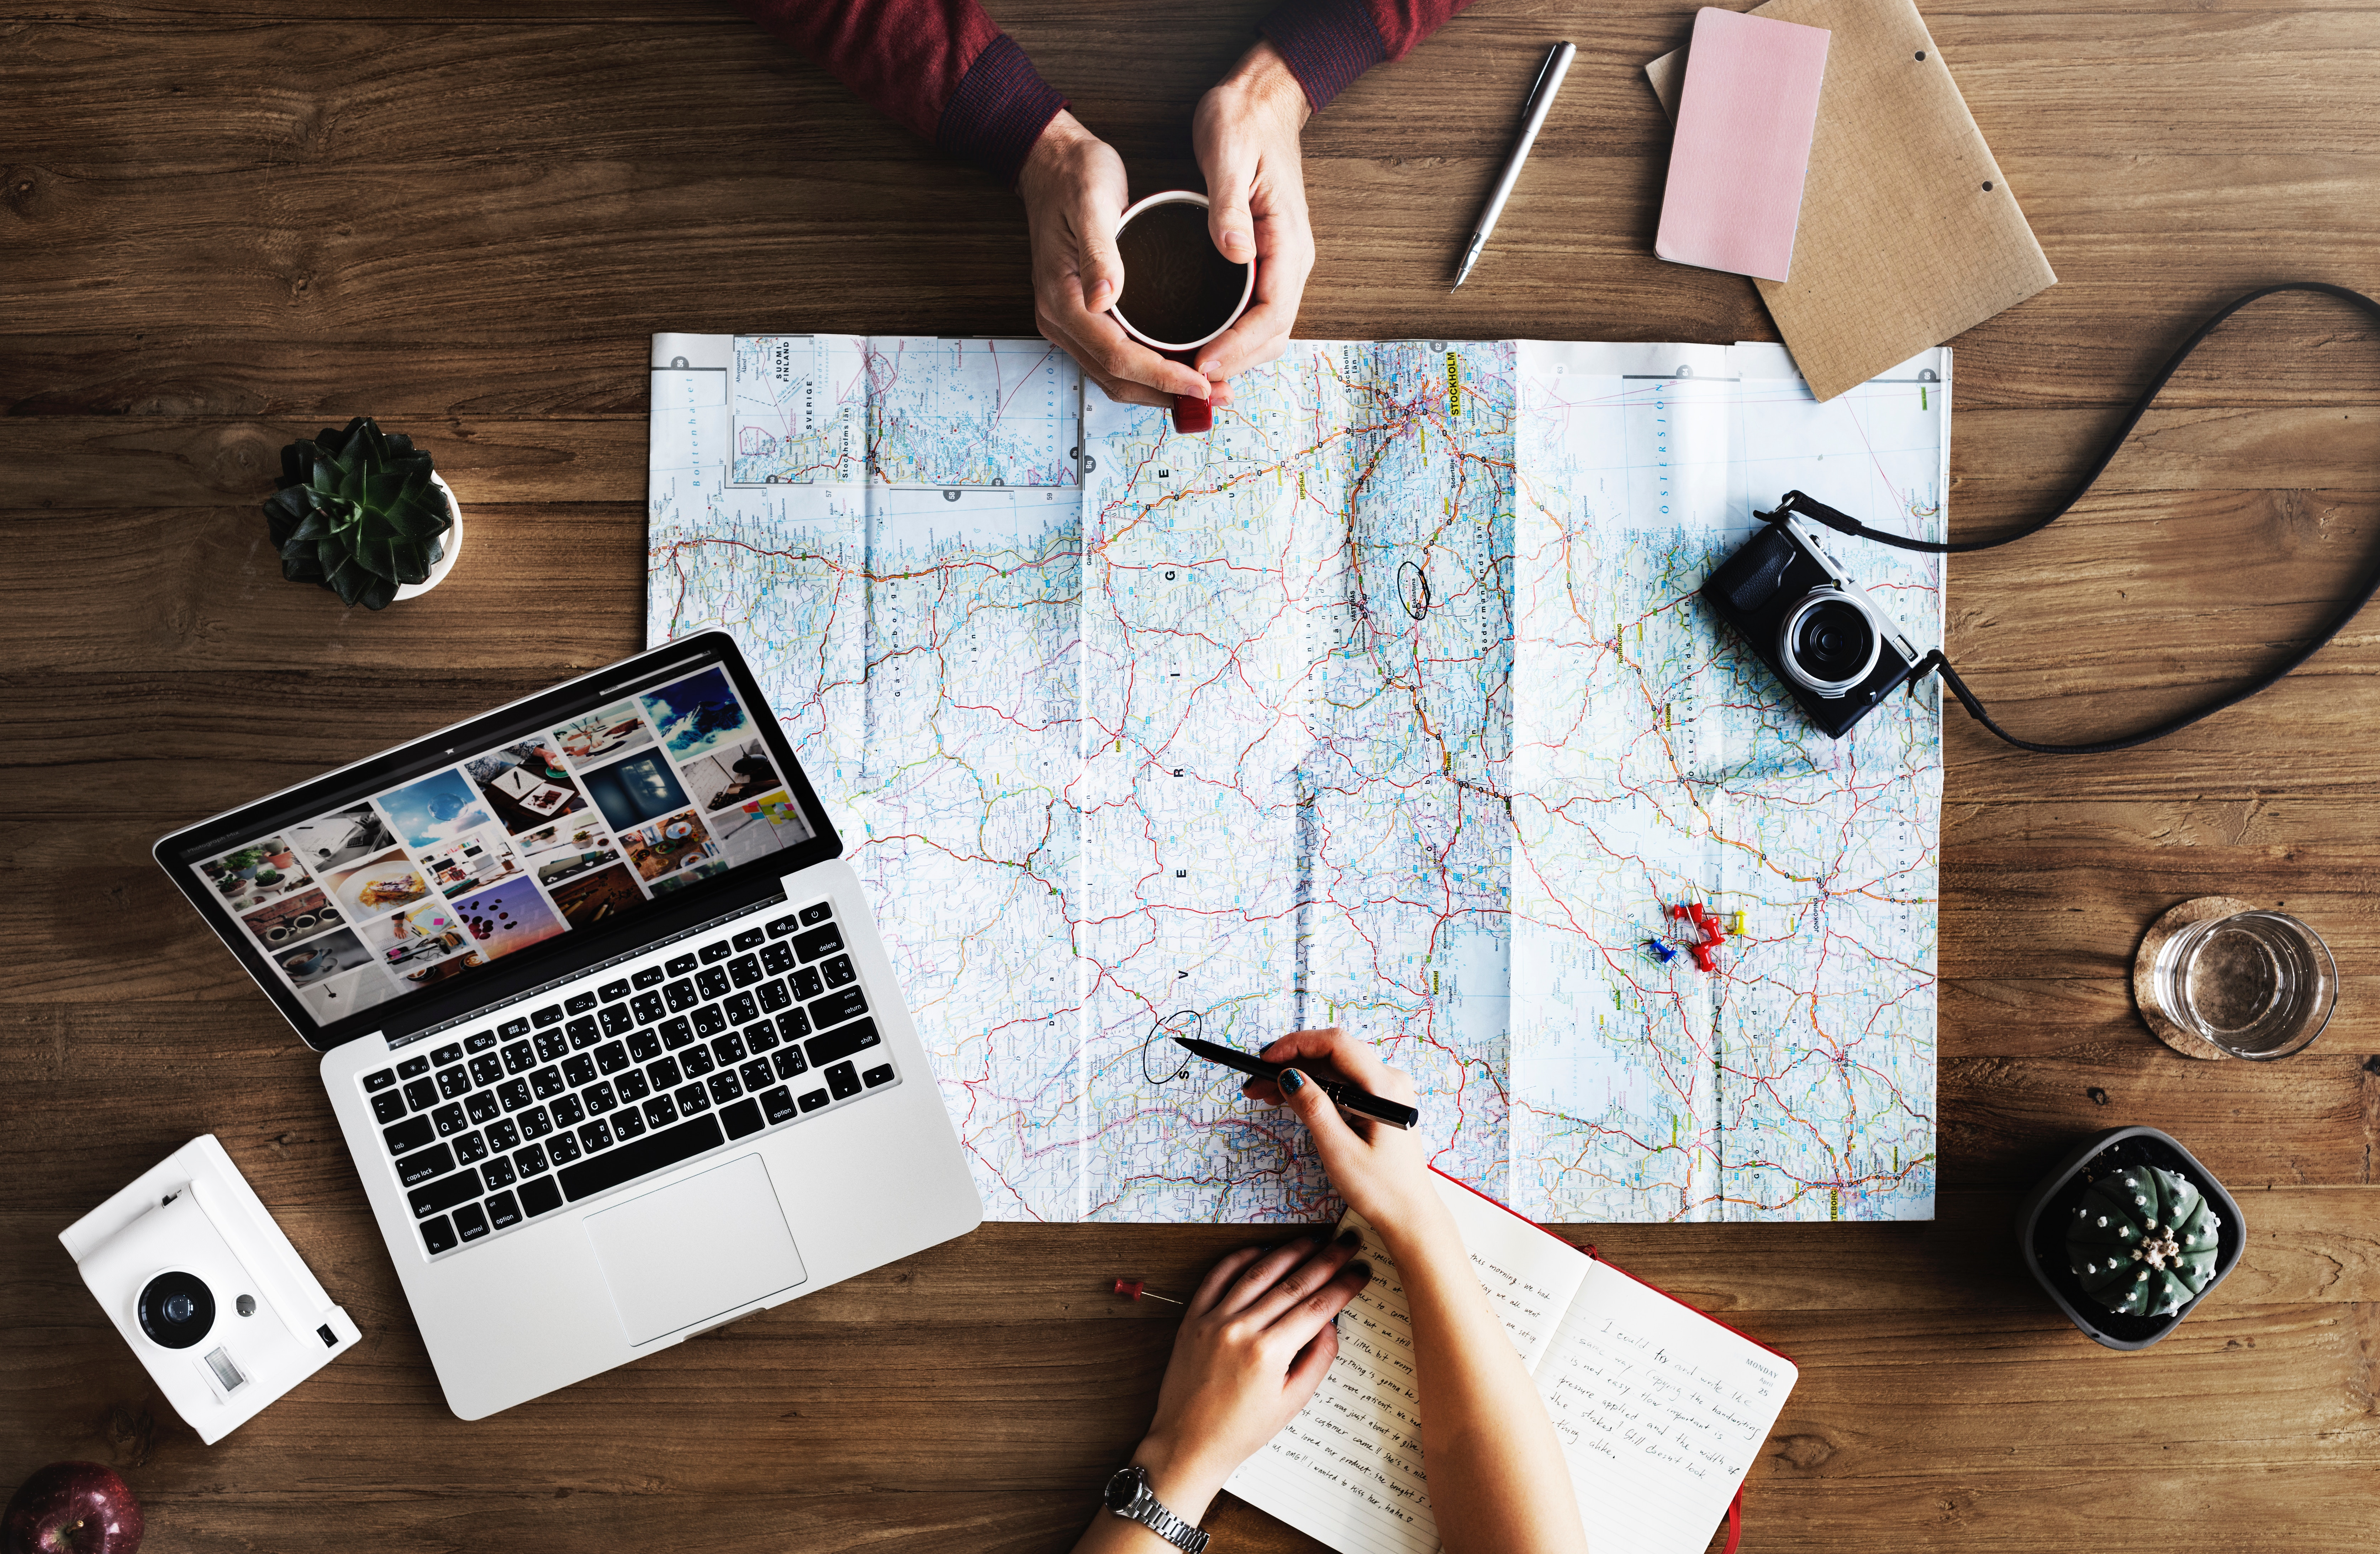 Trip planning with map, laptop and phone.